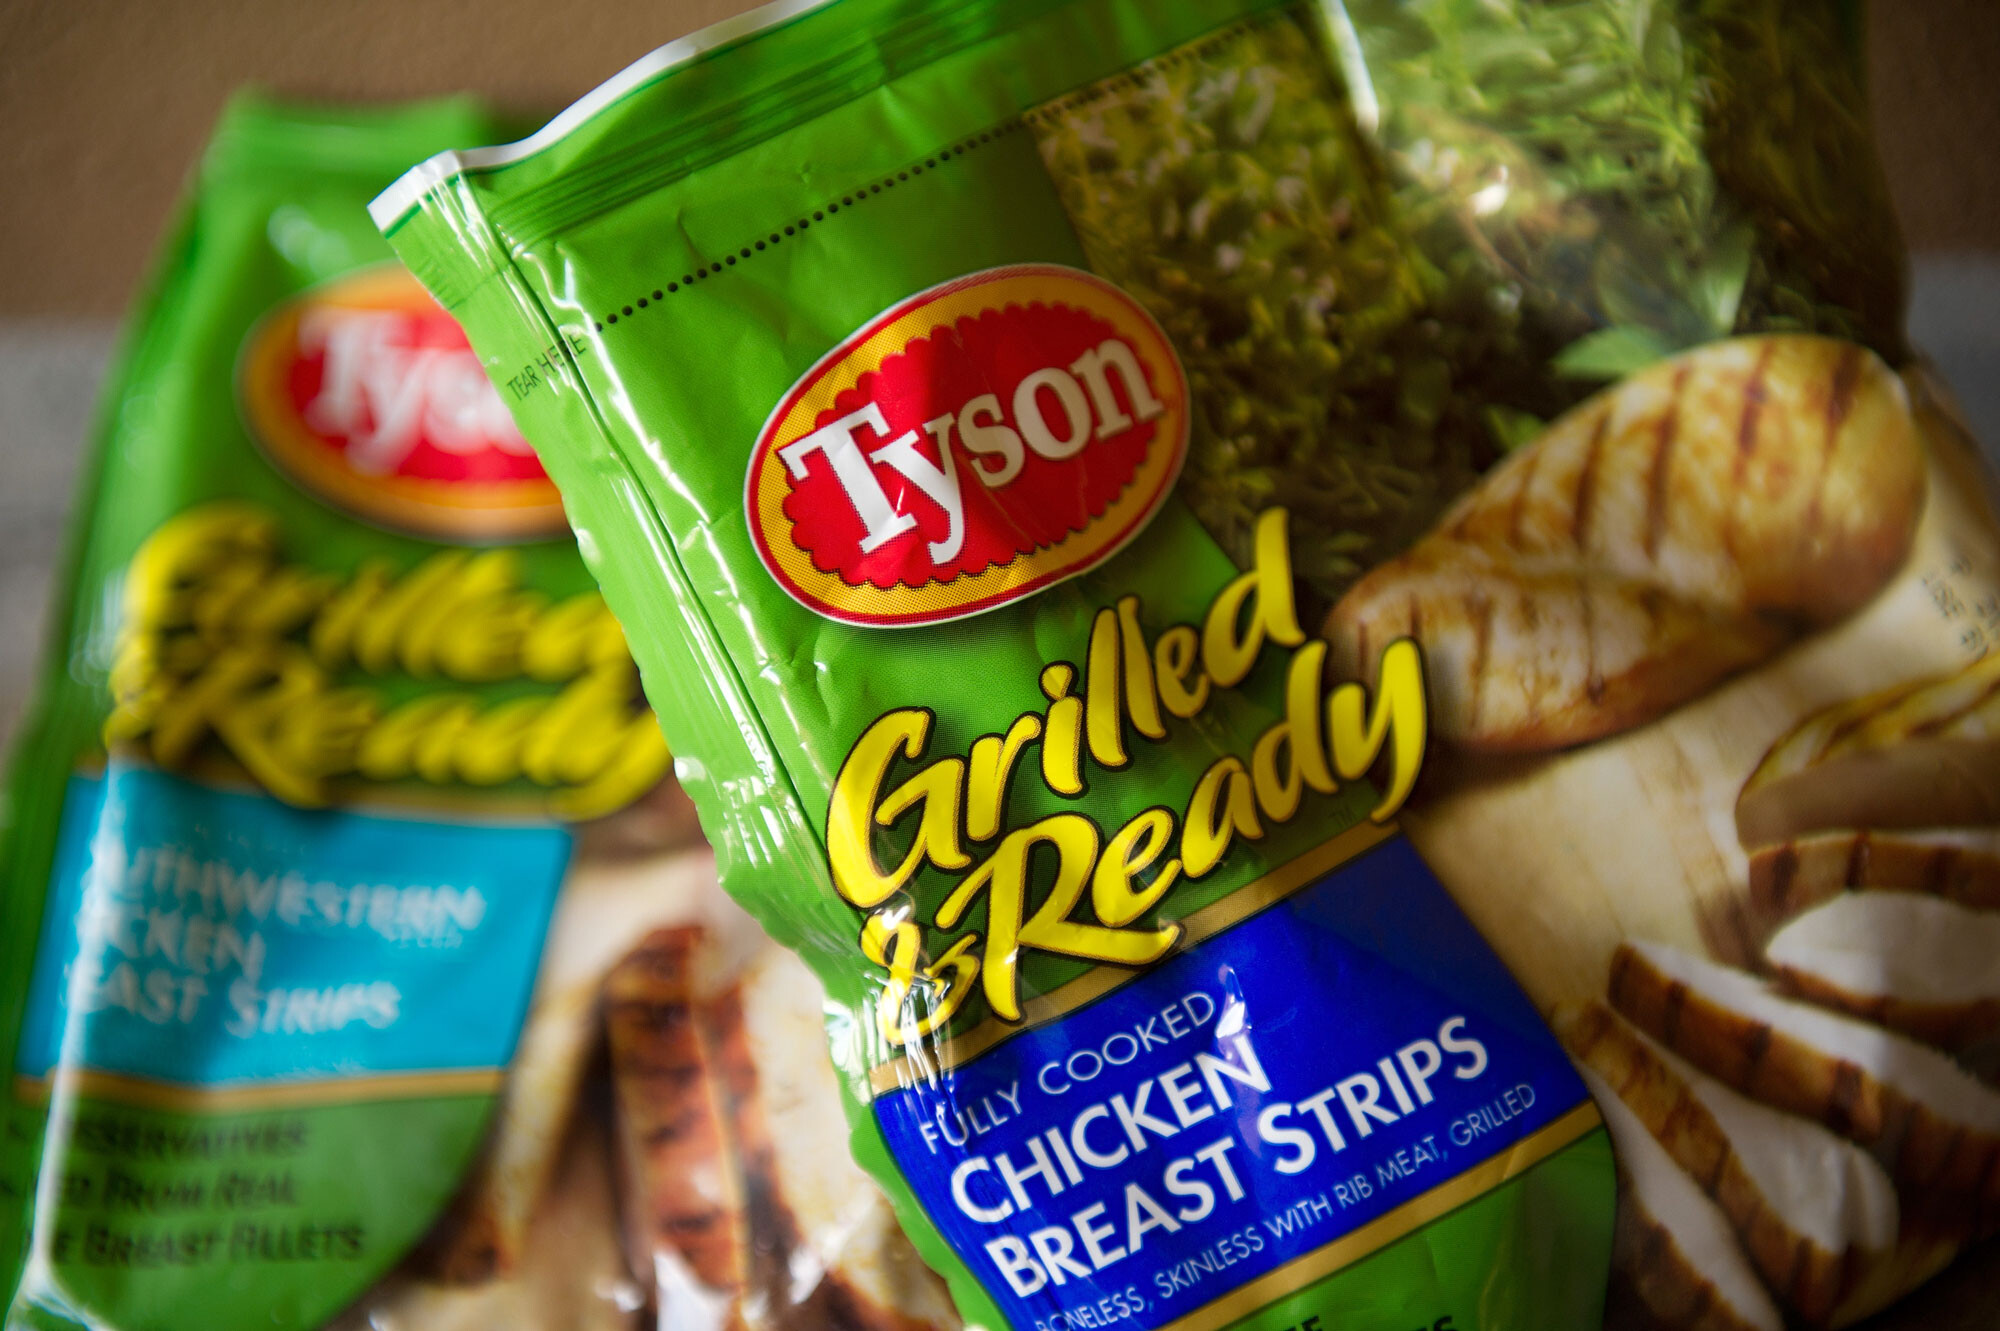 Tyson recalls 8.5 million pounds of chicken products due to possible listeria contamination